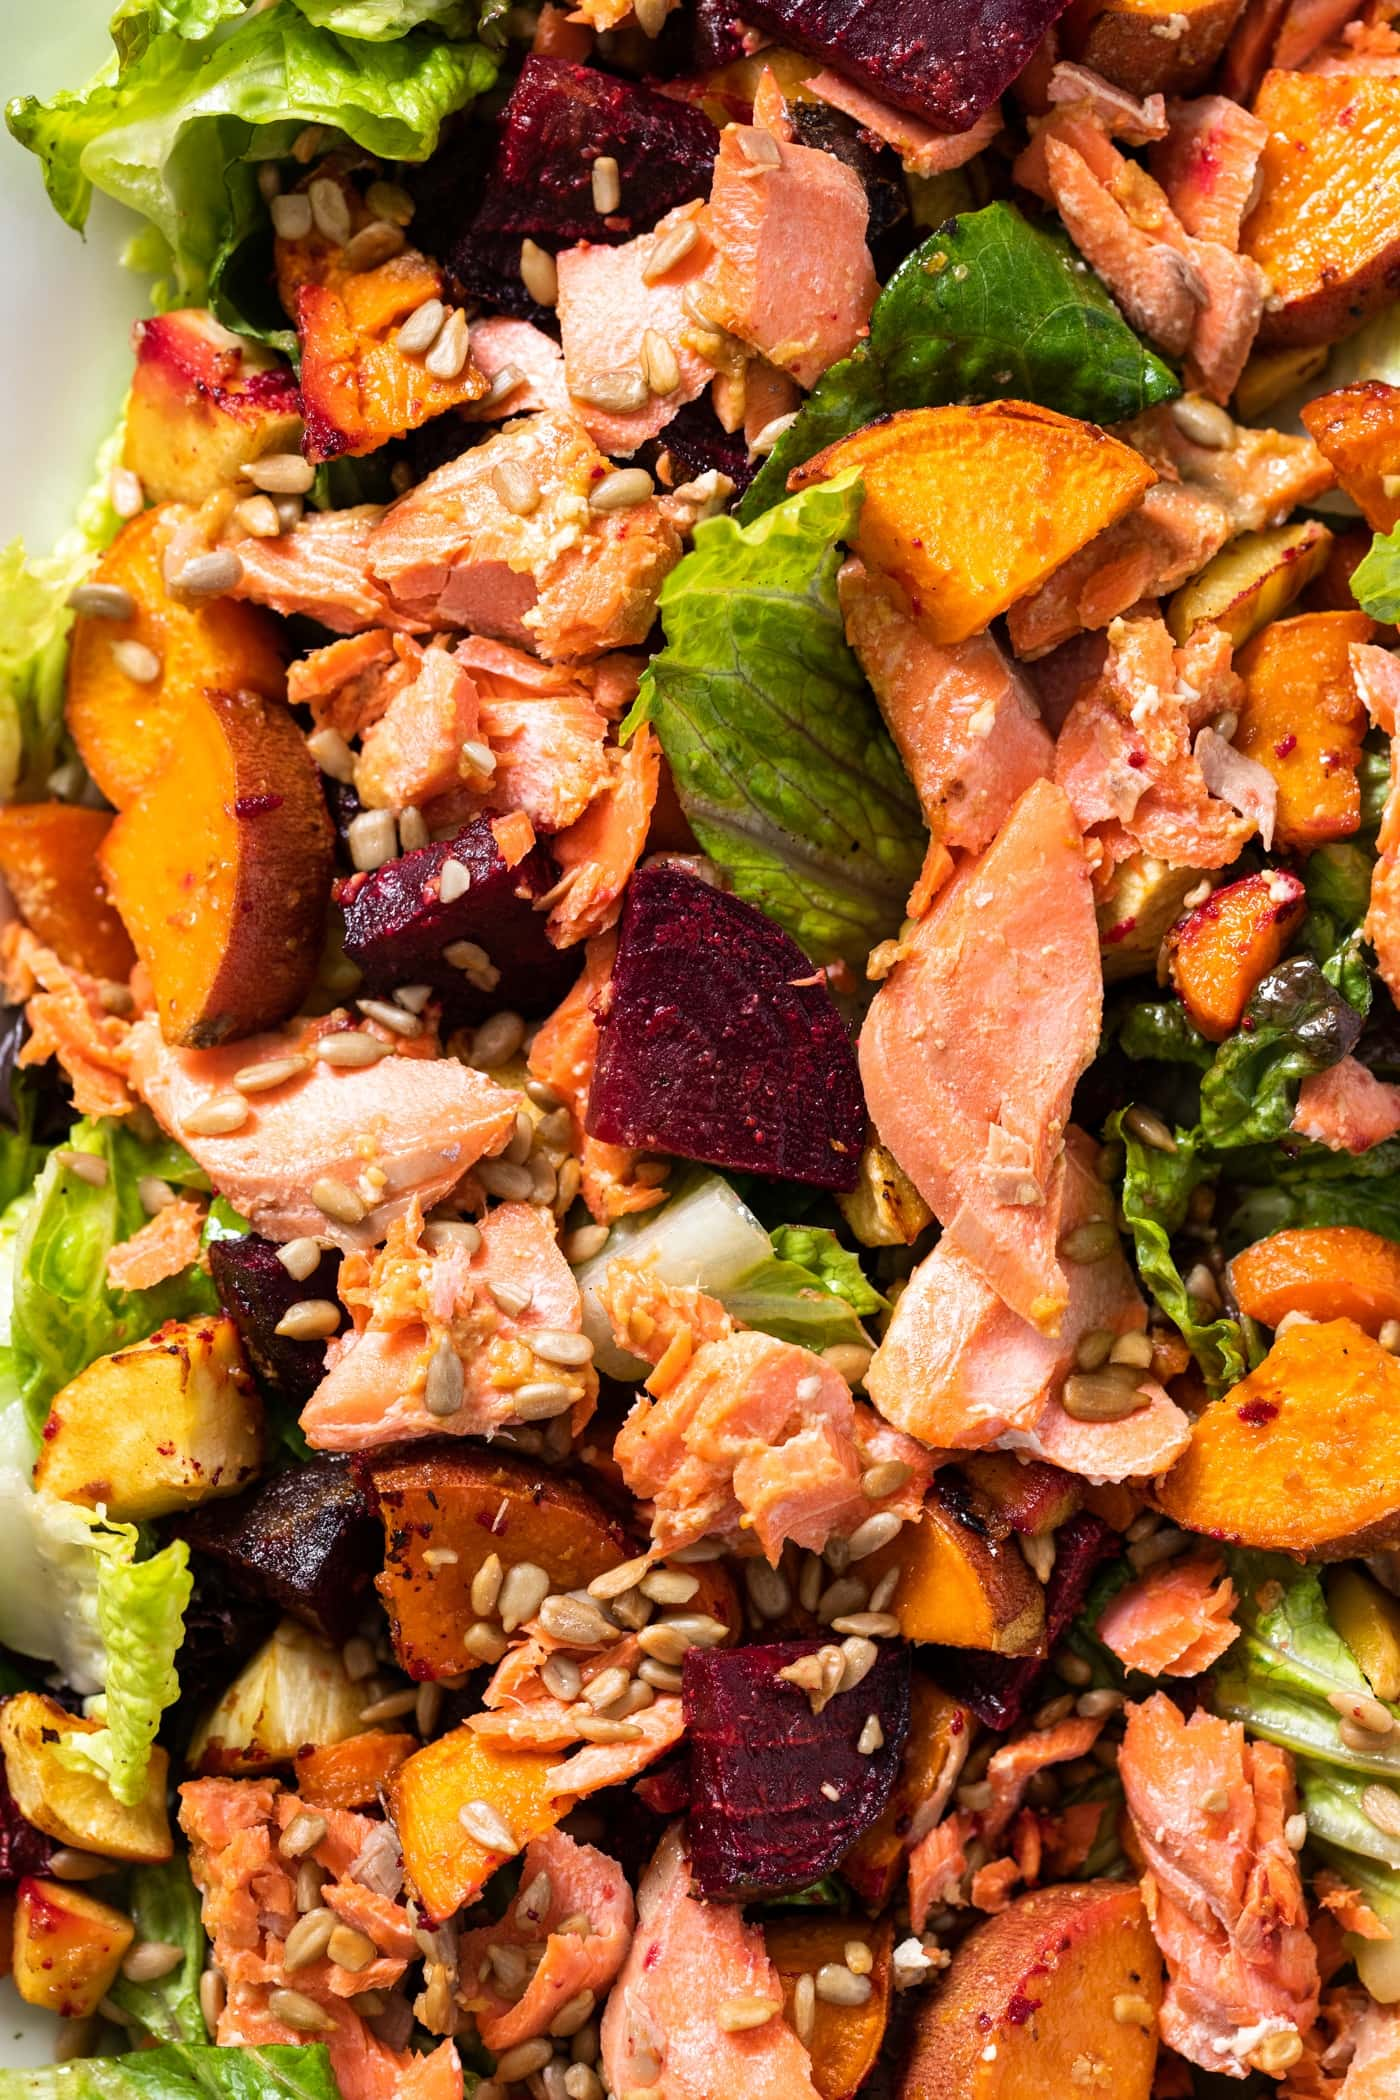 Close up top down view of salmon sitting on bed of green lettuce surrounded by orange colored sweet potatoes and topped with sunflower seeds